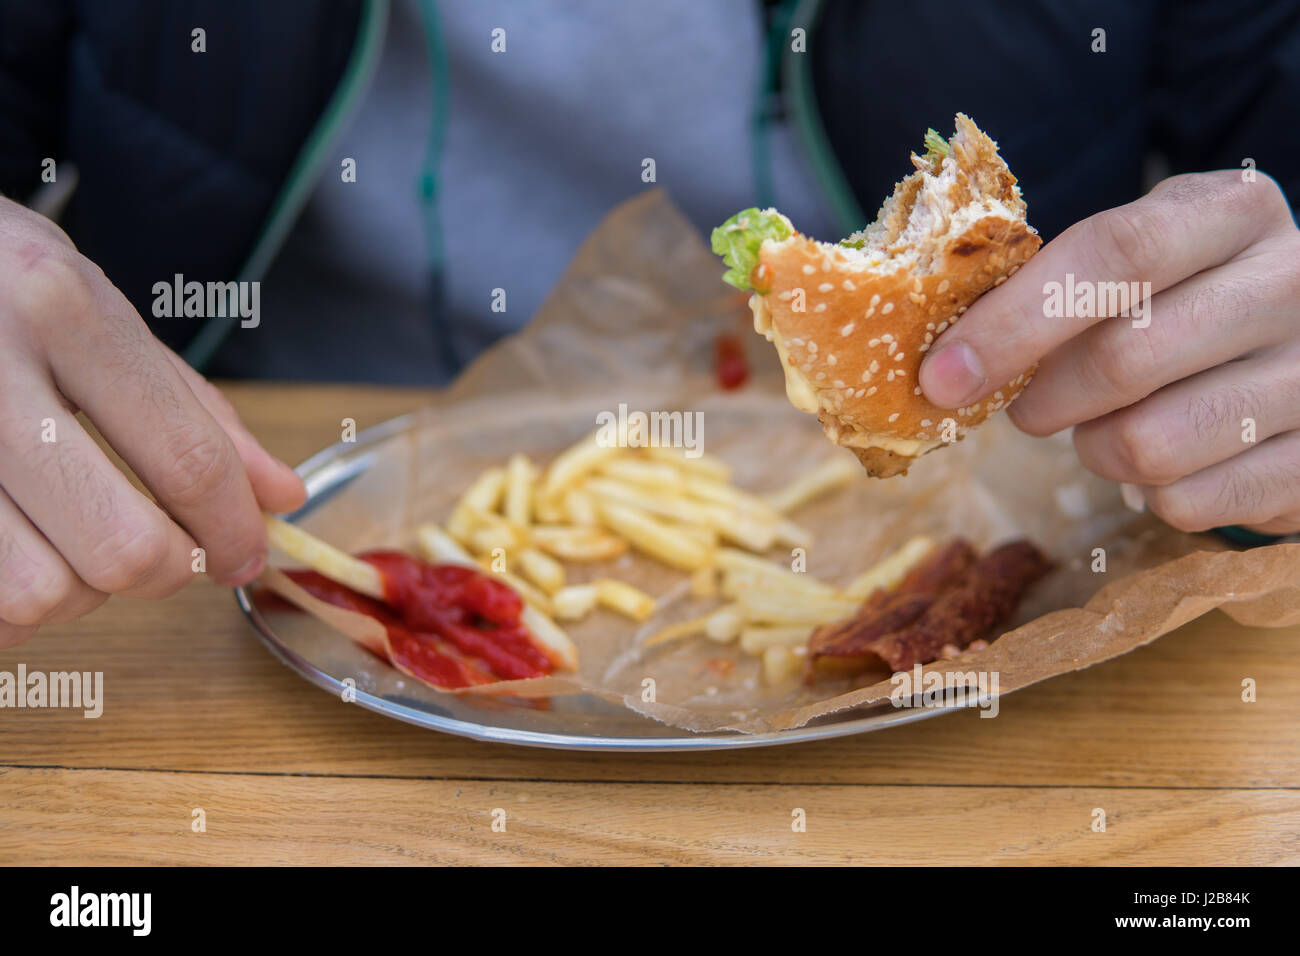 The man is eating a burger in a fast-food street diner - Stock Image